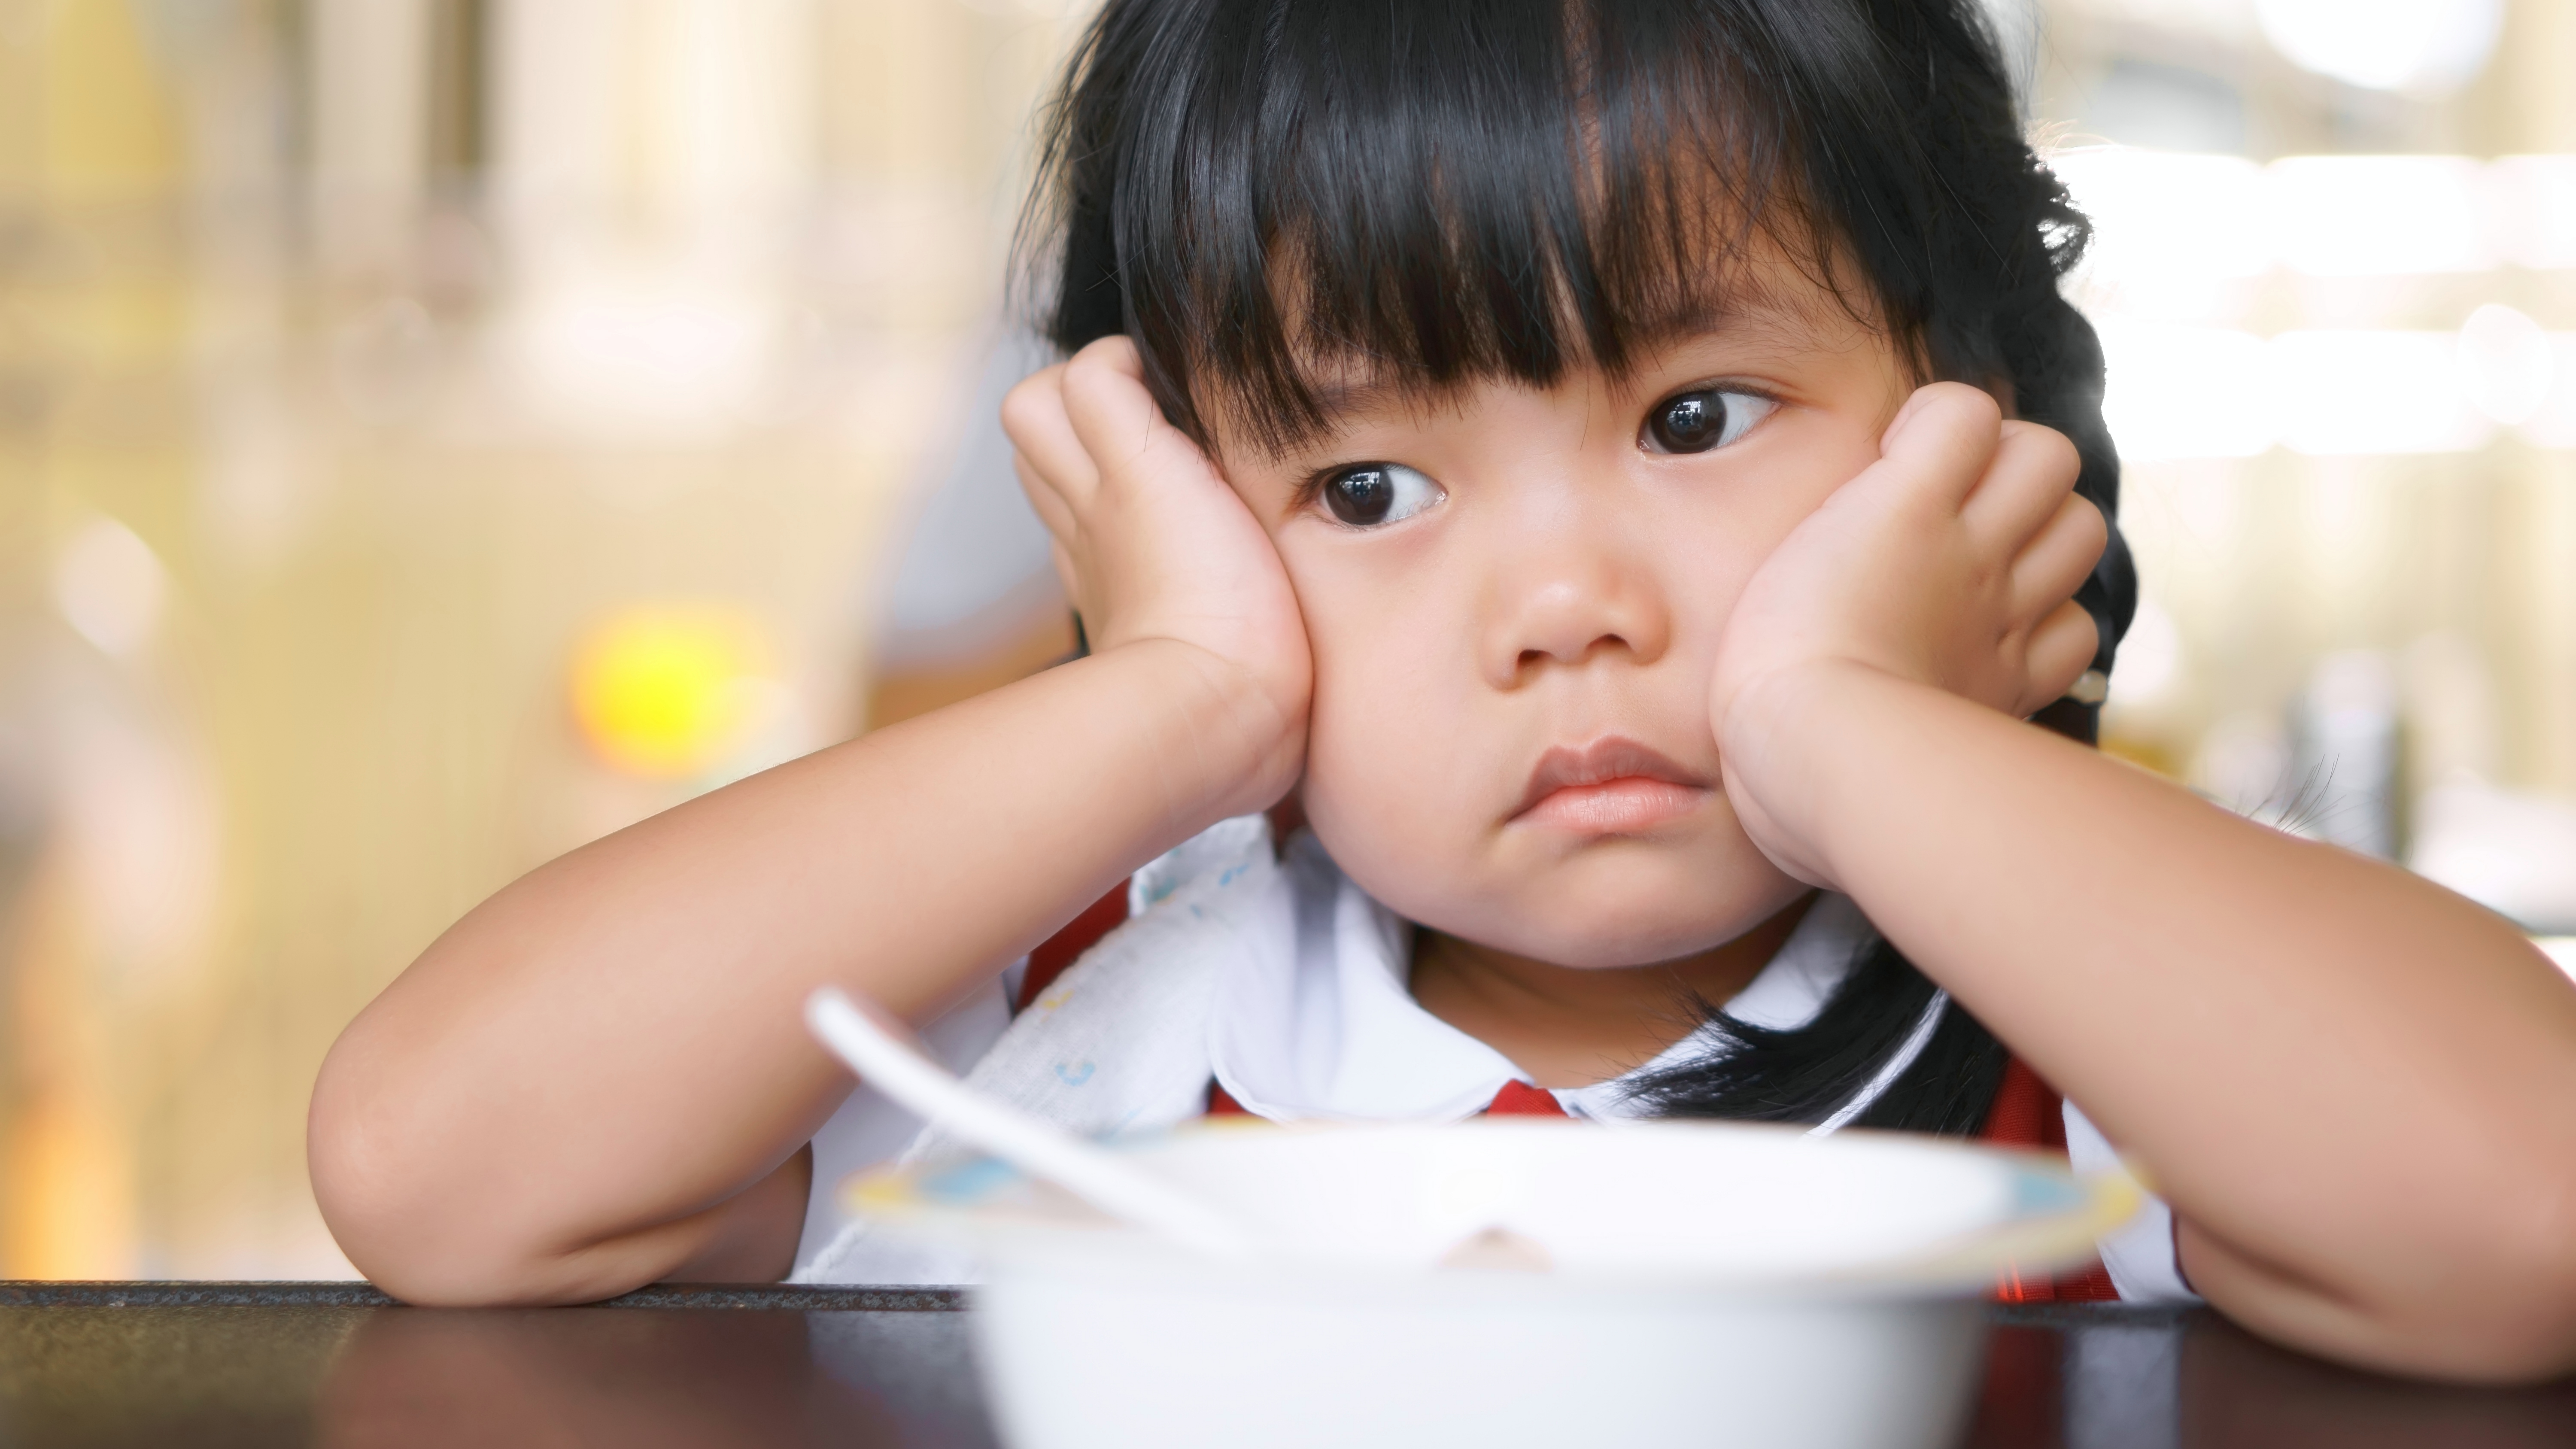 a little girl looking sad and pouting with her head on her hands and a food bowl in front of her, looking like a picky eater